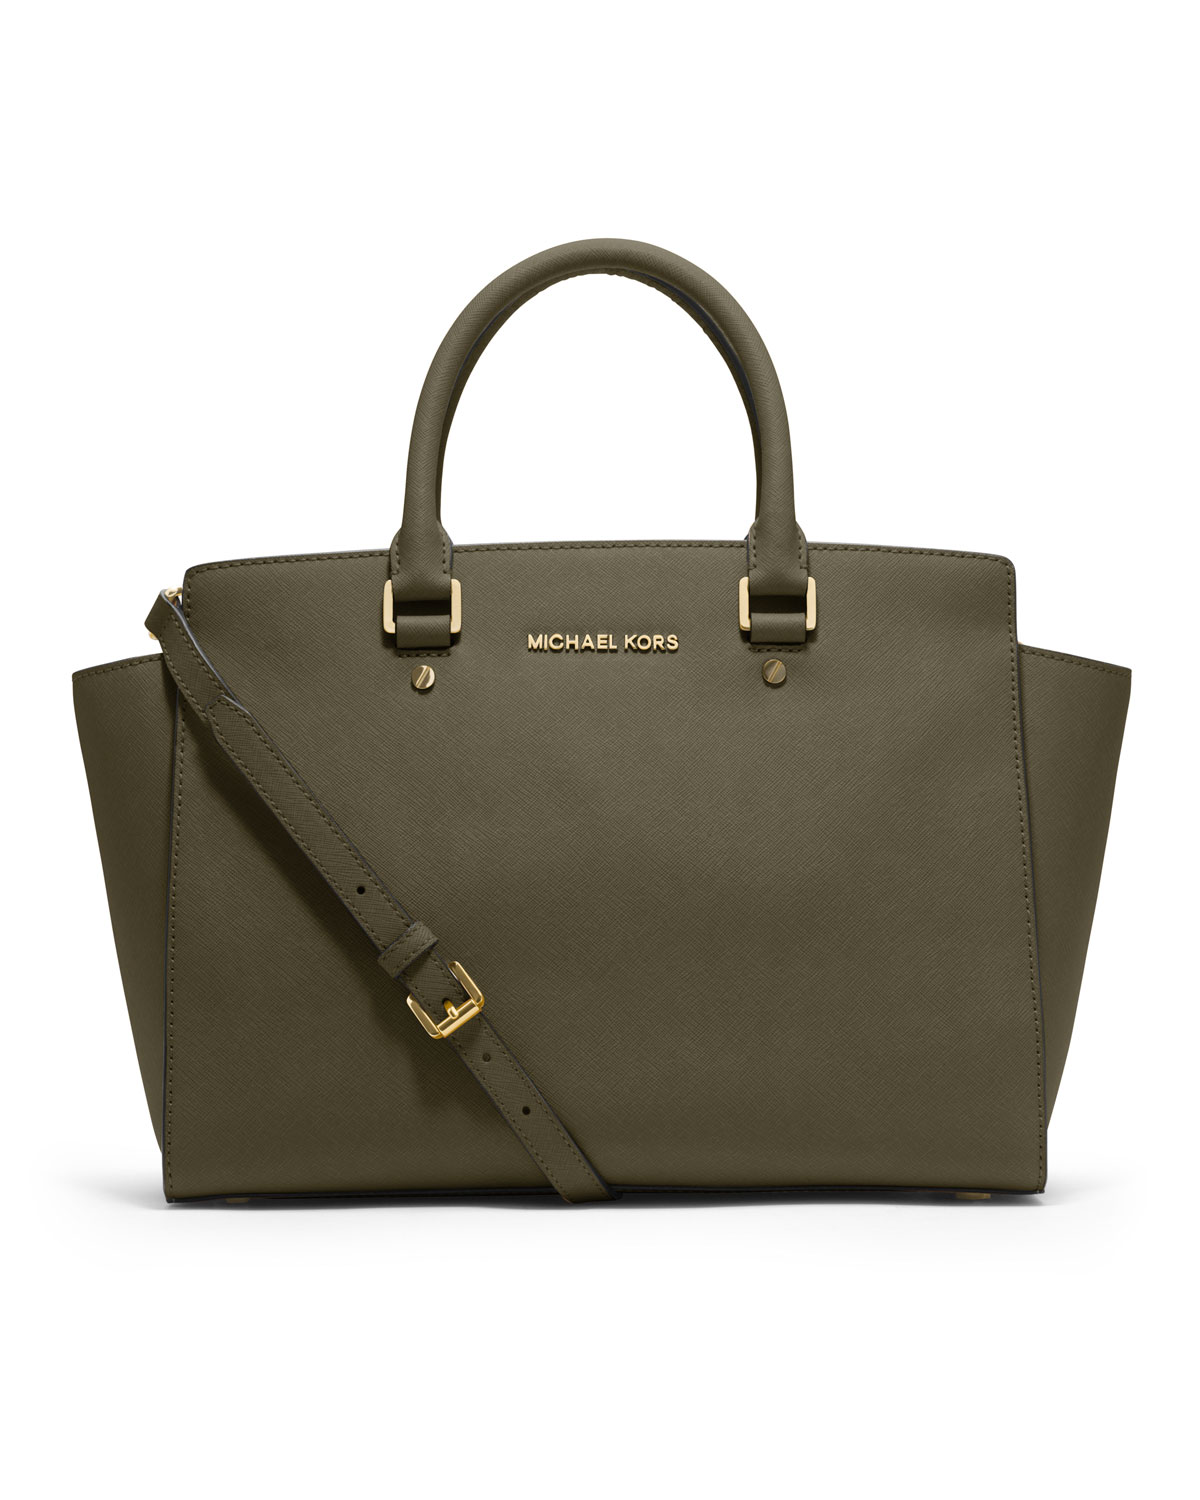 michael michael kors large selma saffiano satchel in khaki loden lyst. Black Bedroom Furniture Sets. Home Design Ideas